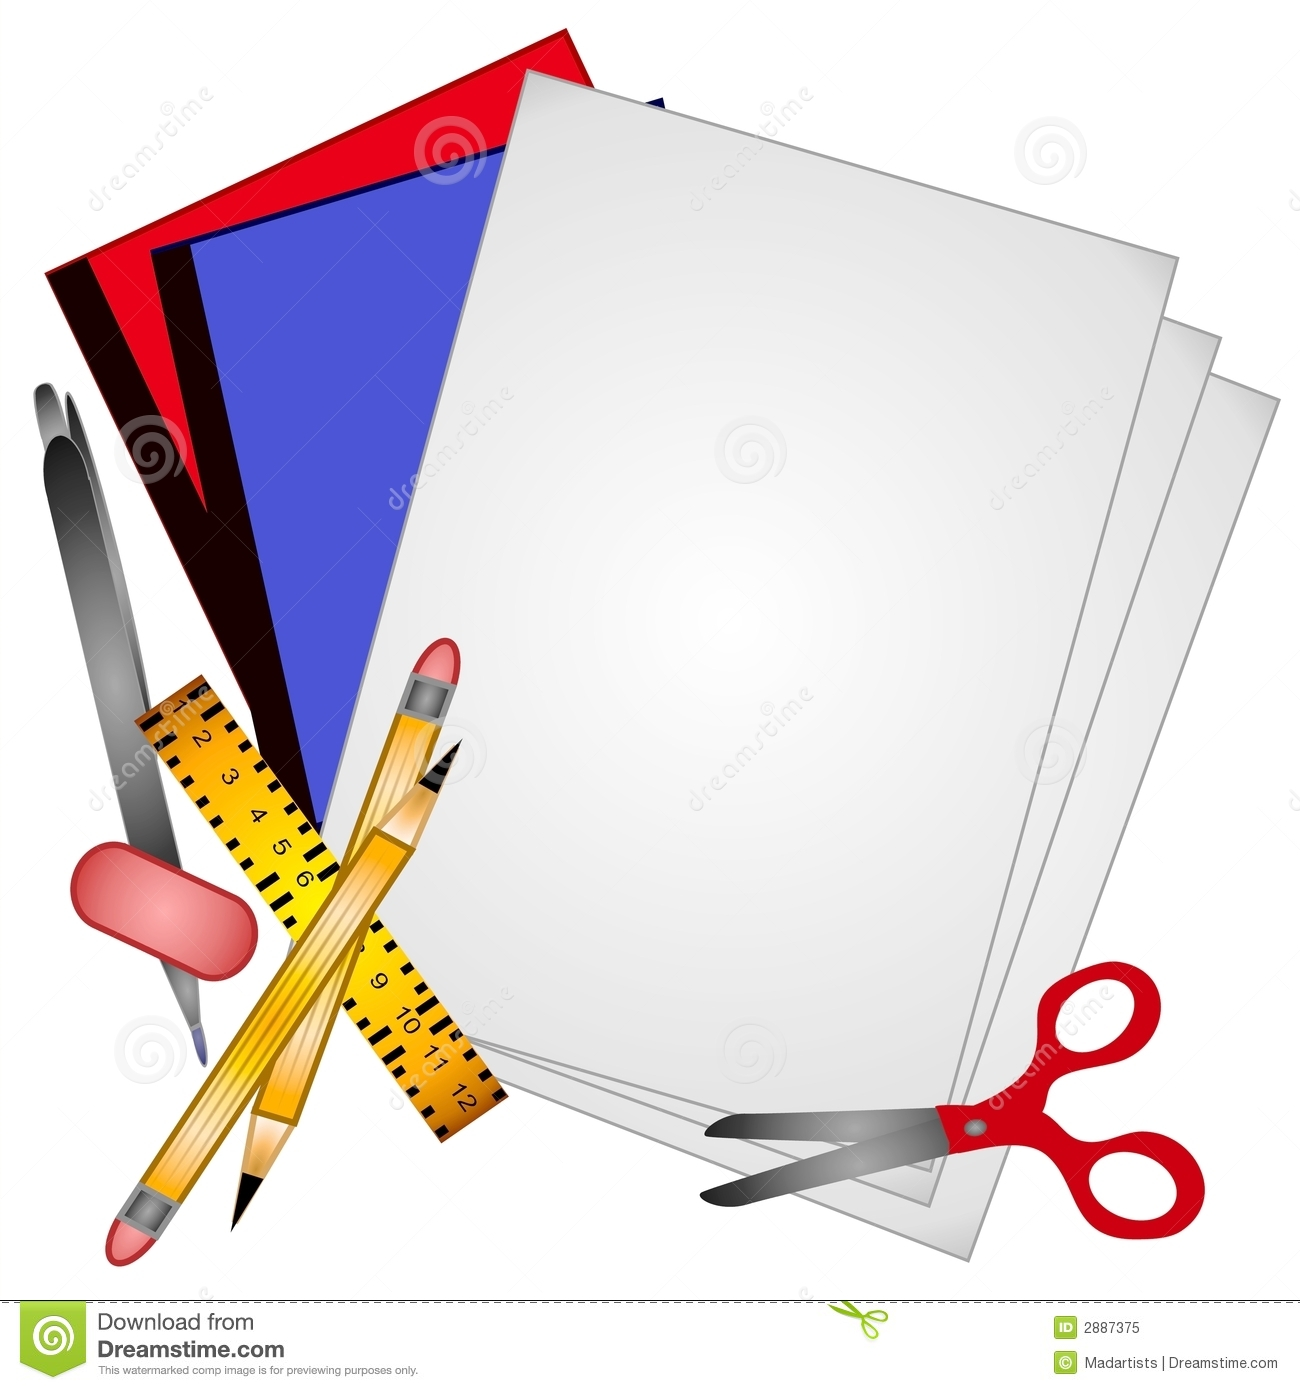 Free School Things Clipart, Download Free Clip Art, Free.